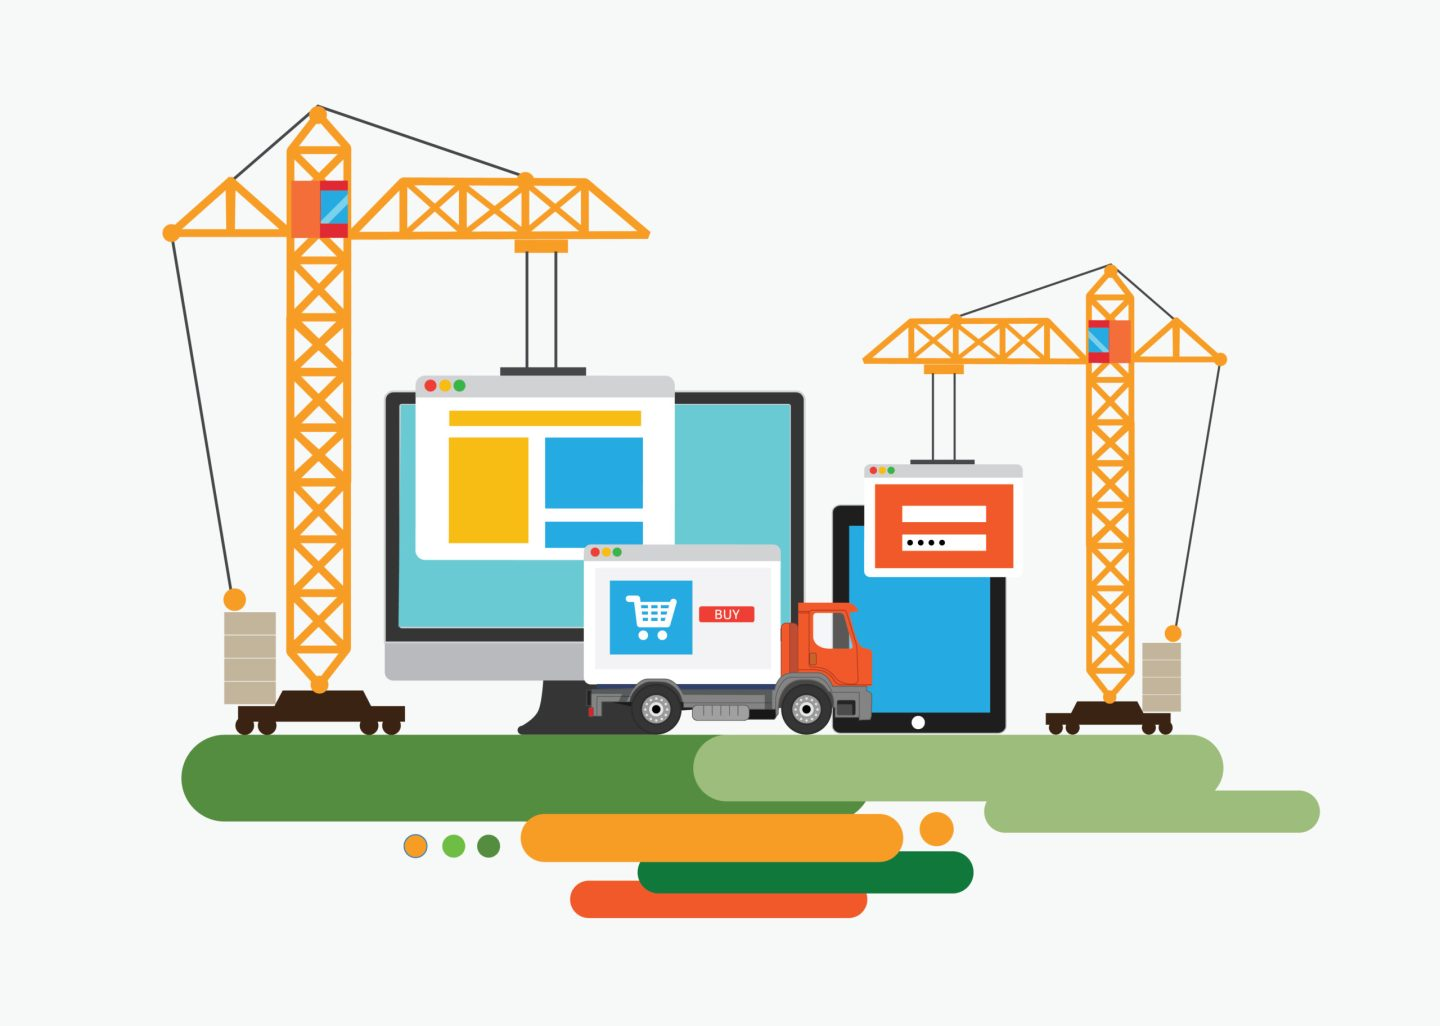 website construction graphic with trucks, computer, iPad and cranes